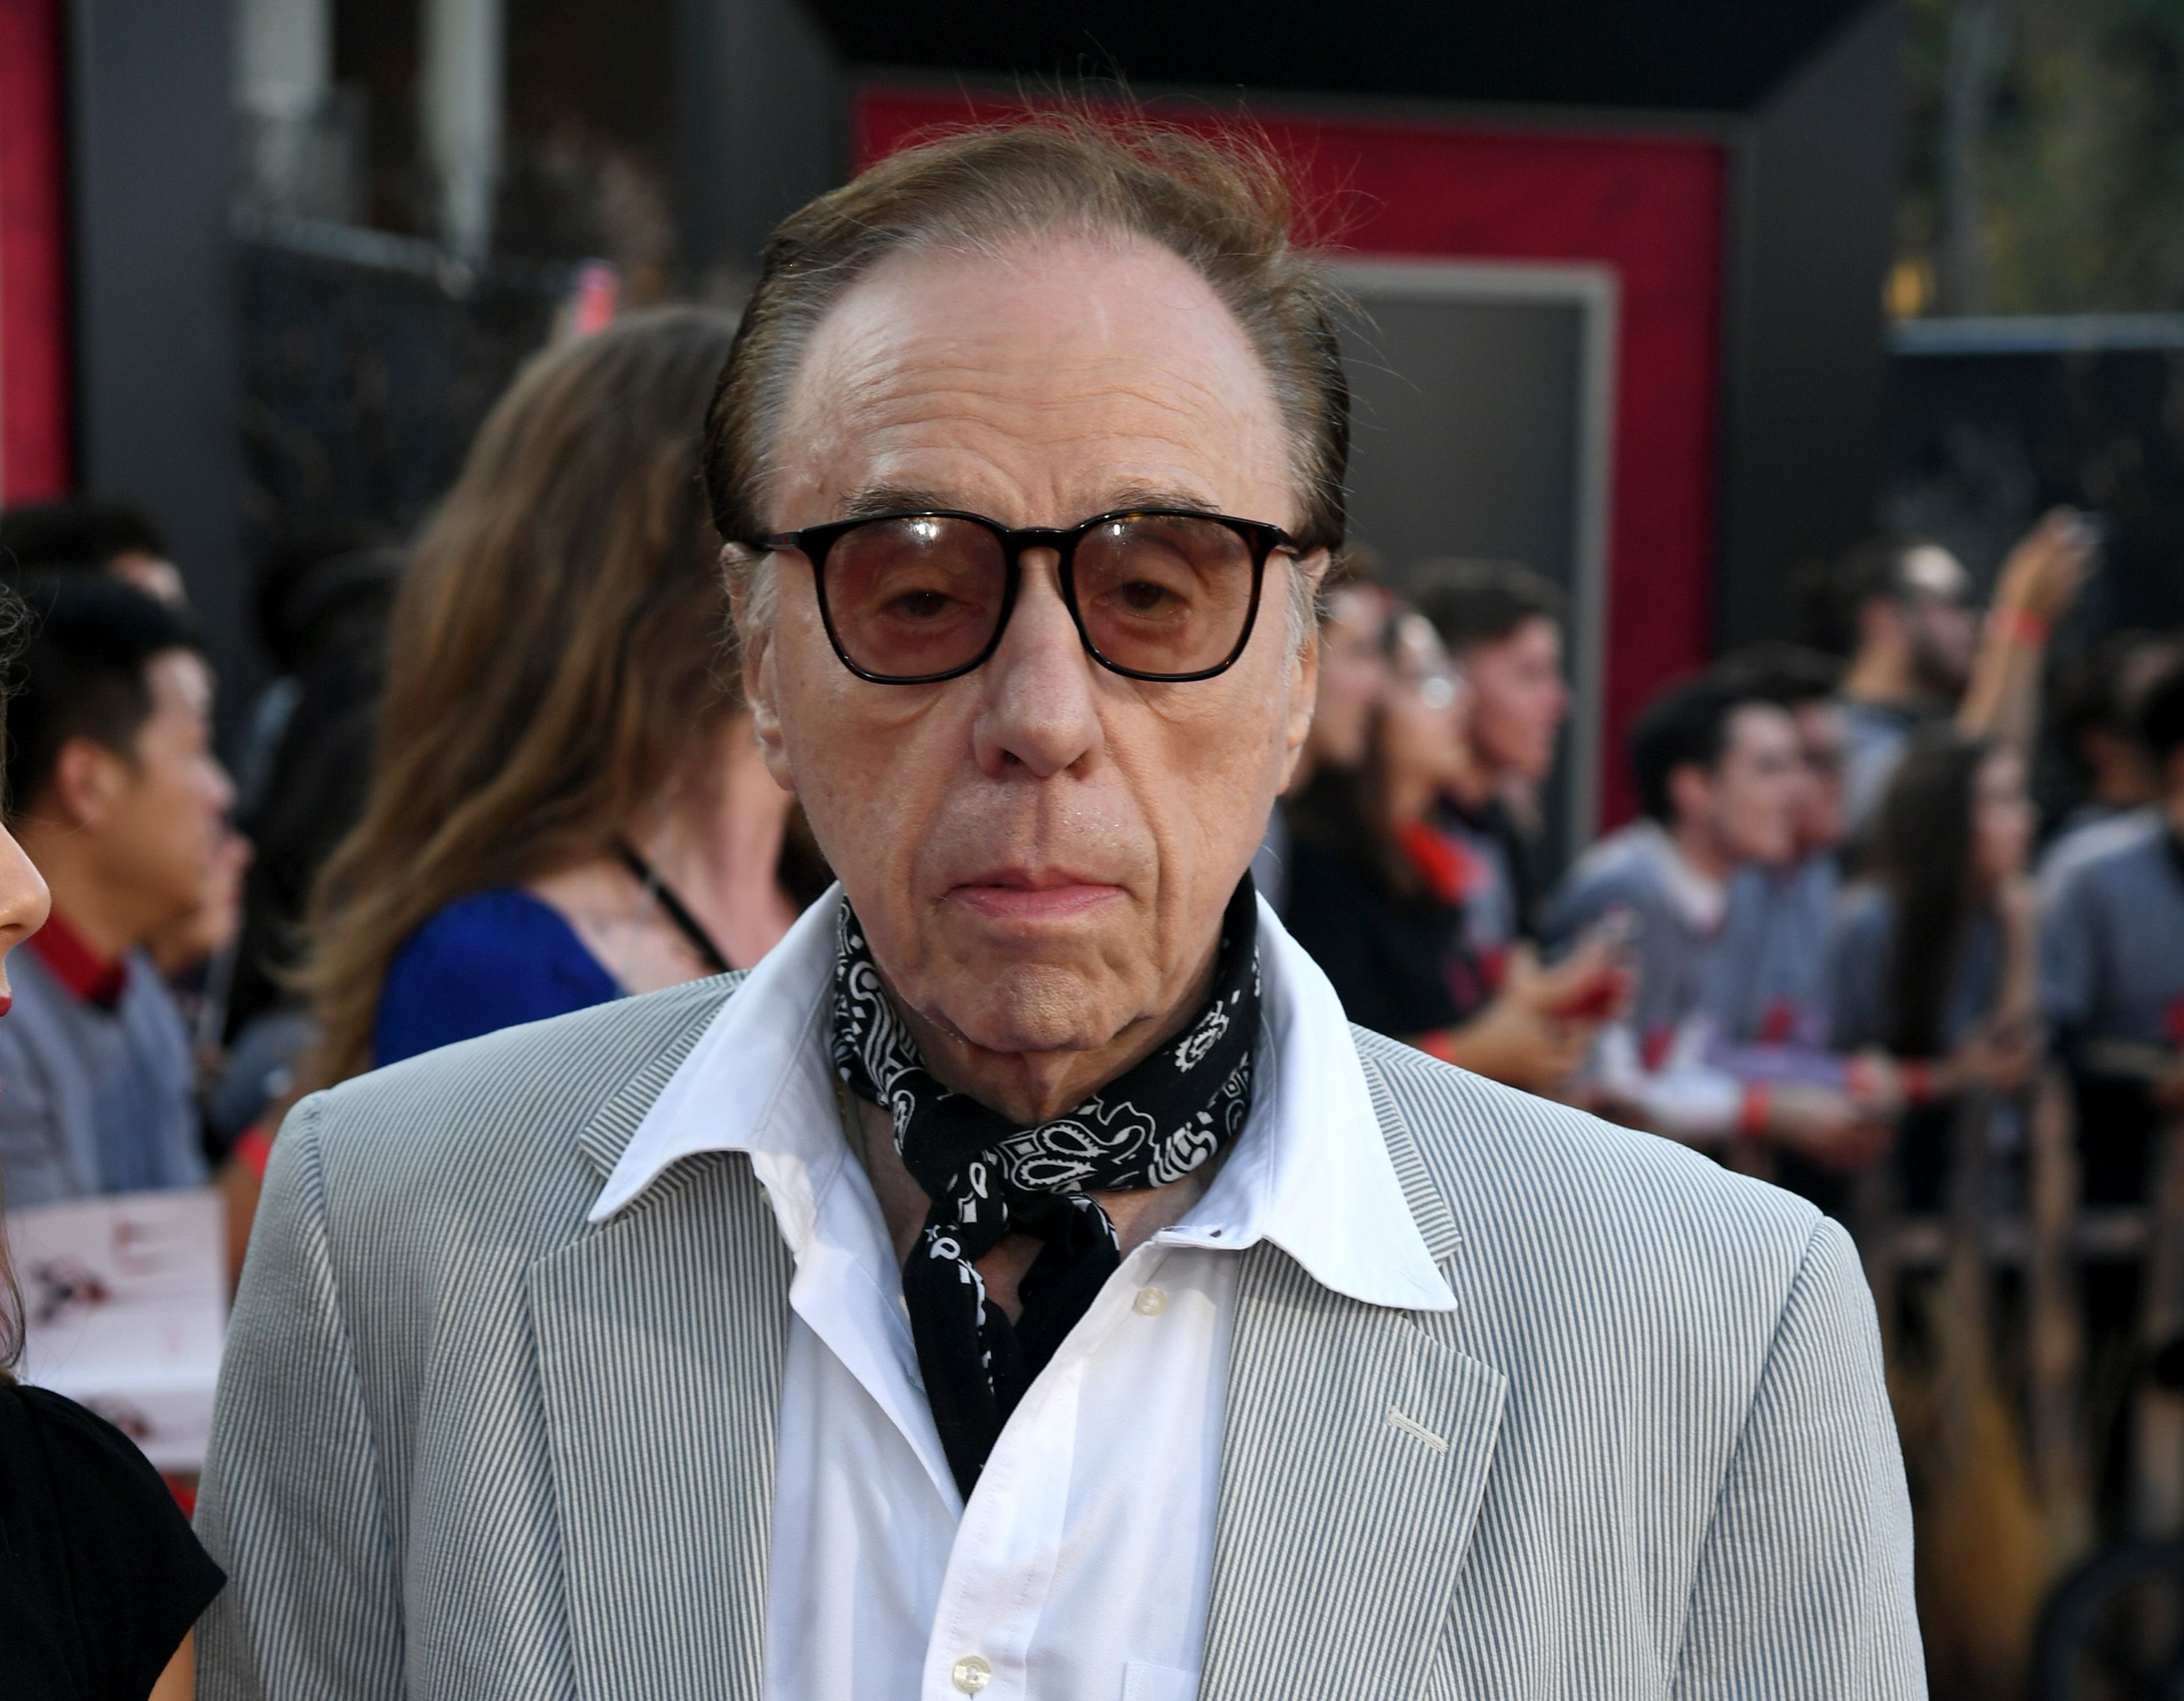 """Peter Bogdanovich at the premiere of Warner Bros. Pictures"""" """"It Chapter Two"""" at Regency Village Theatre on August 26, 2019 